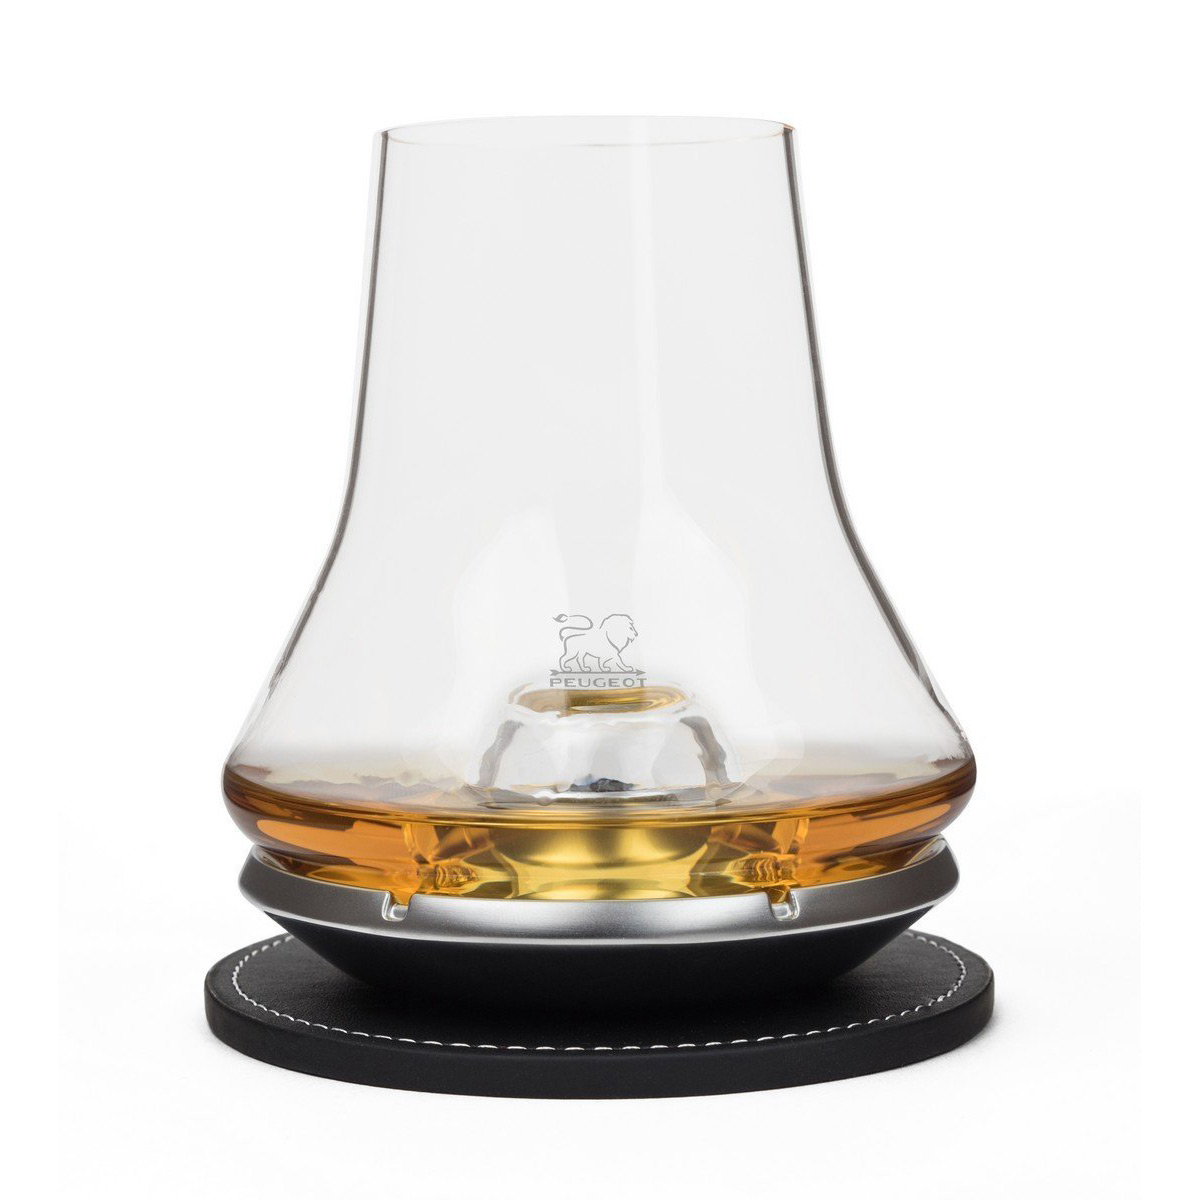 peugeot whisky tasting glass with chilling base the. Black Bedroom Furniture Sets. Home Design Ideas